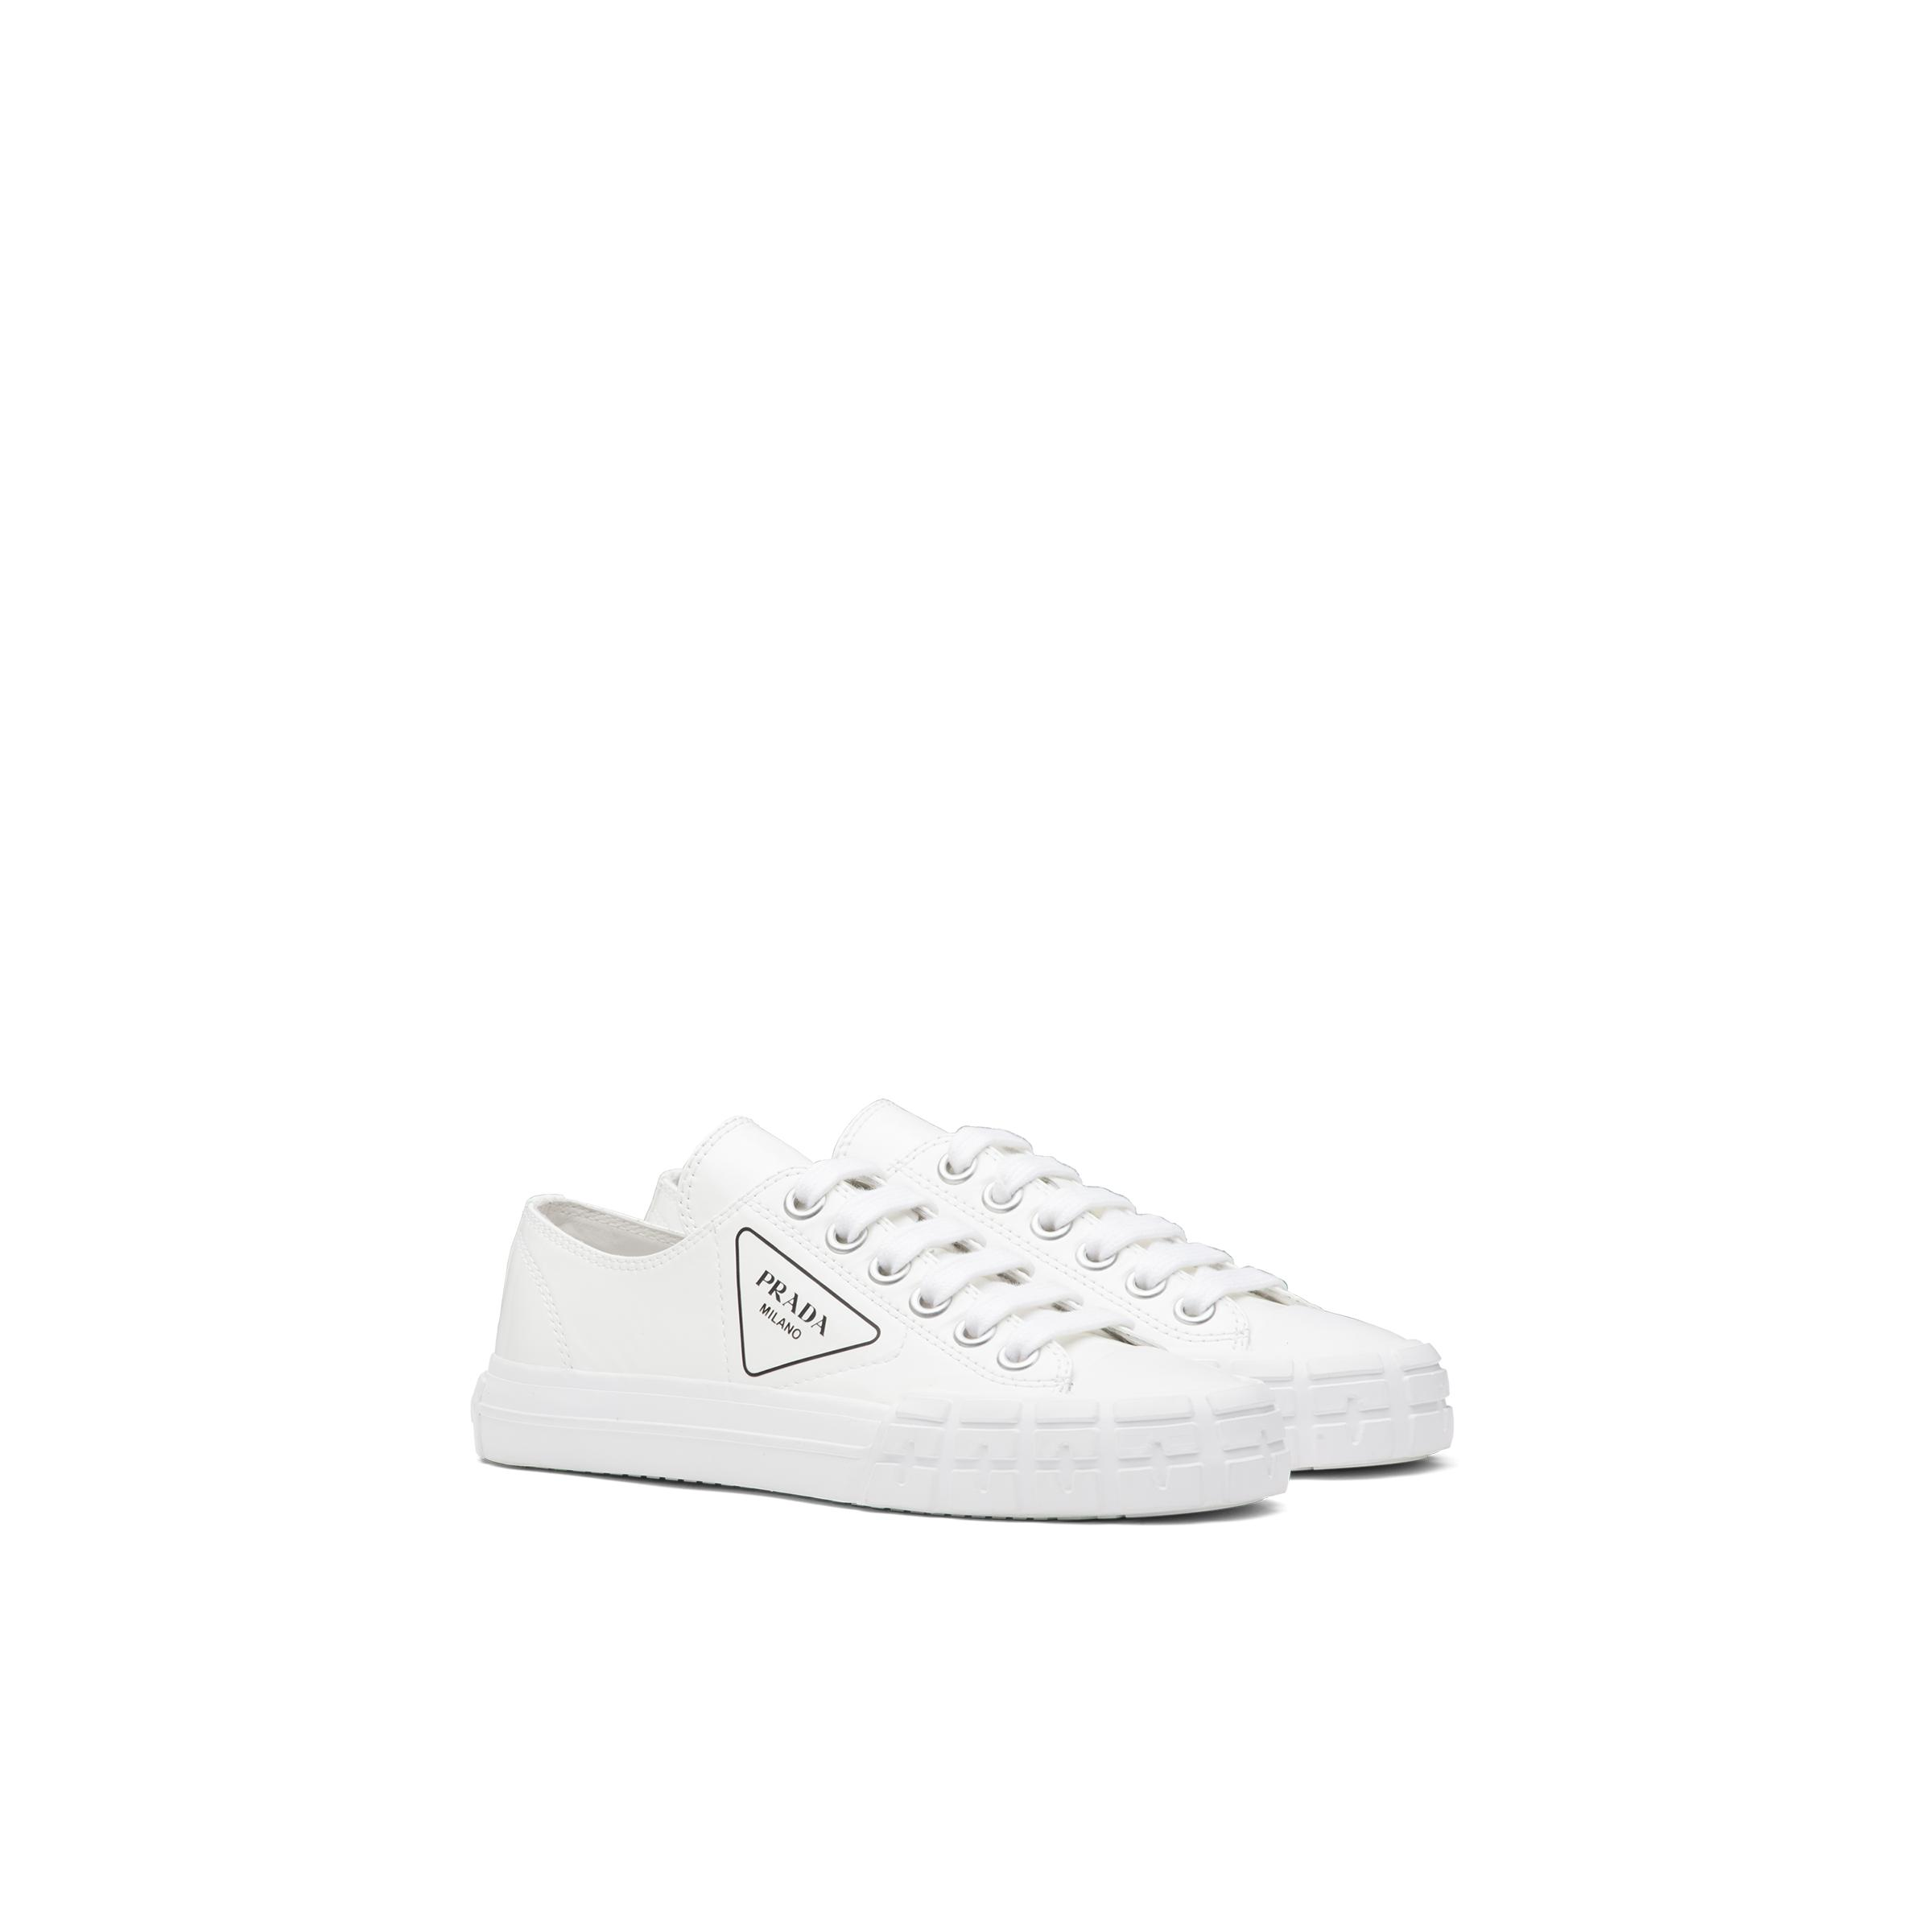 Wheel Patent Leather Sneakers With Vulcanized Rubber Sole Women White